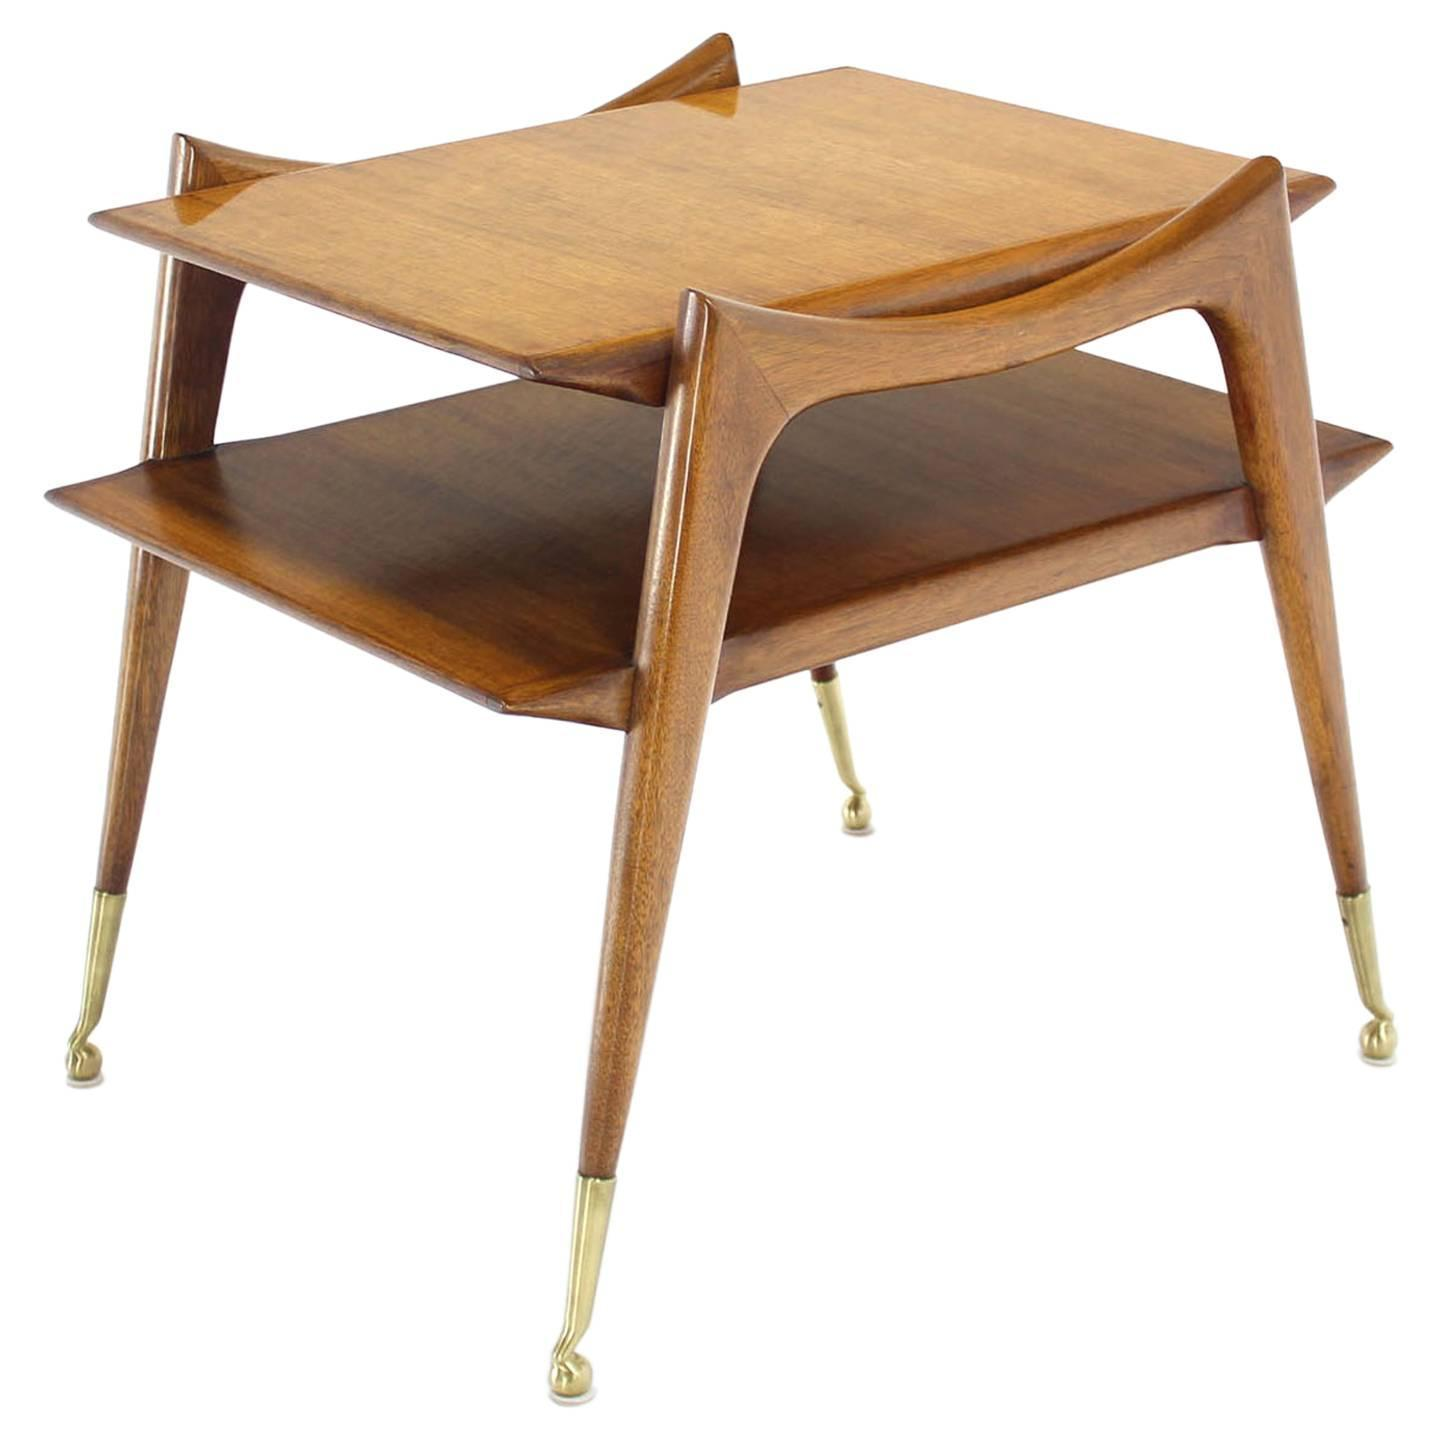 Mid-Century Modern Sculptural Legs Side Table For Sale at 1stdibs